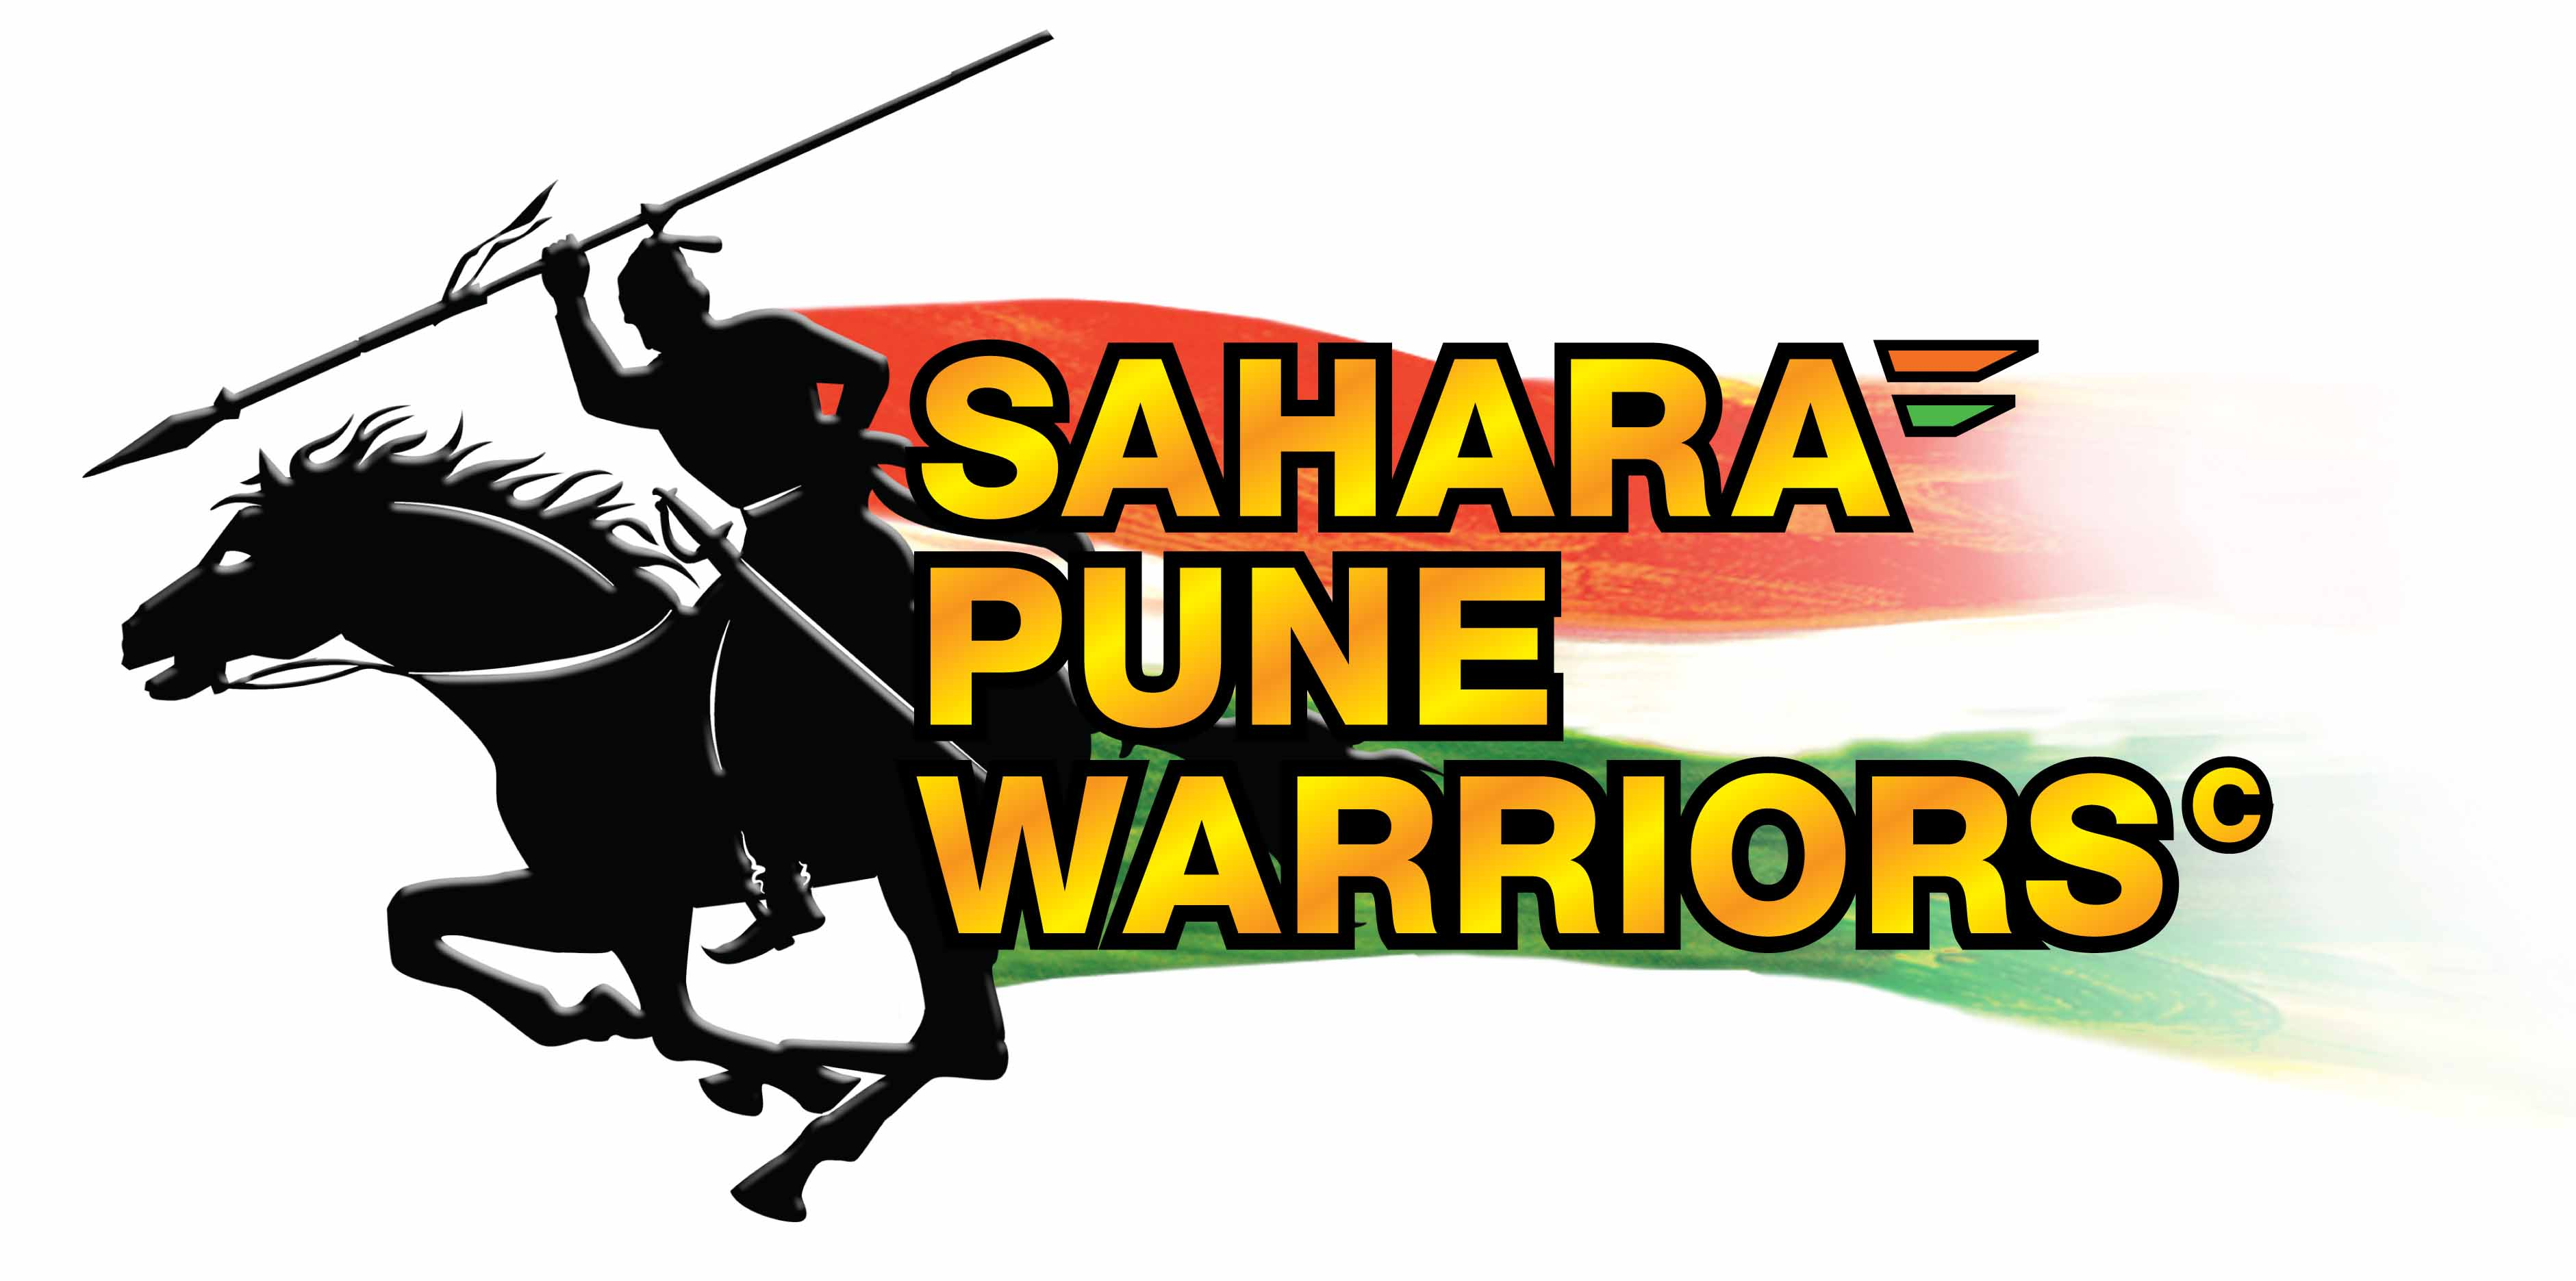 Pune Warriors India Logo Vector EPS Free Download, Logo, Icons.